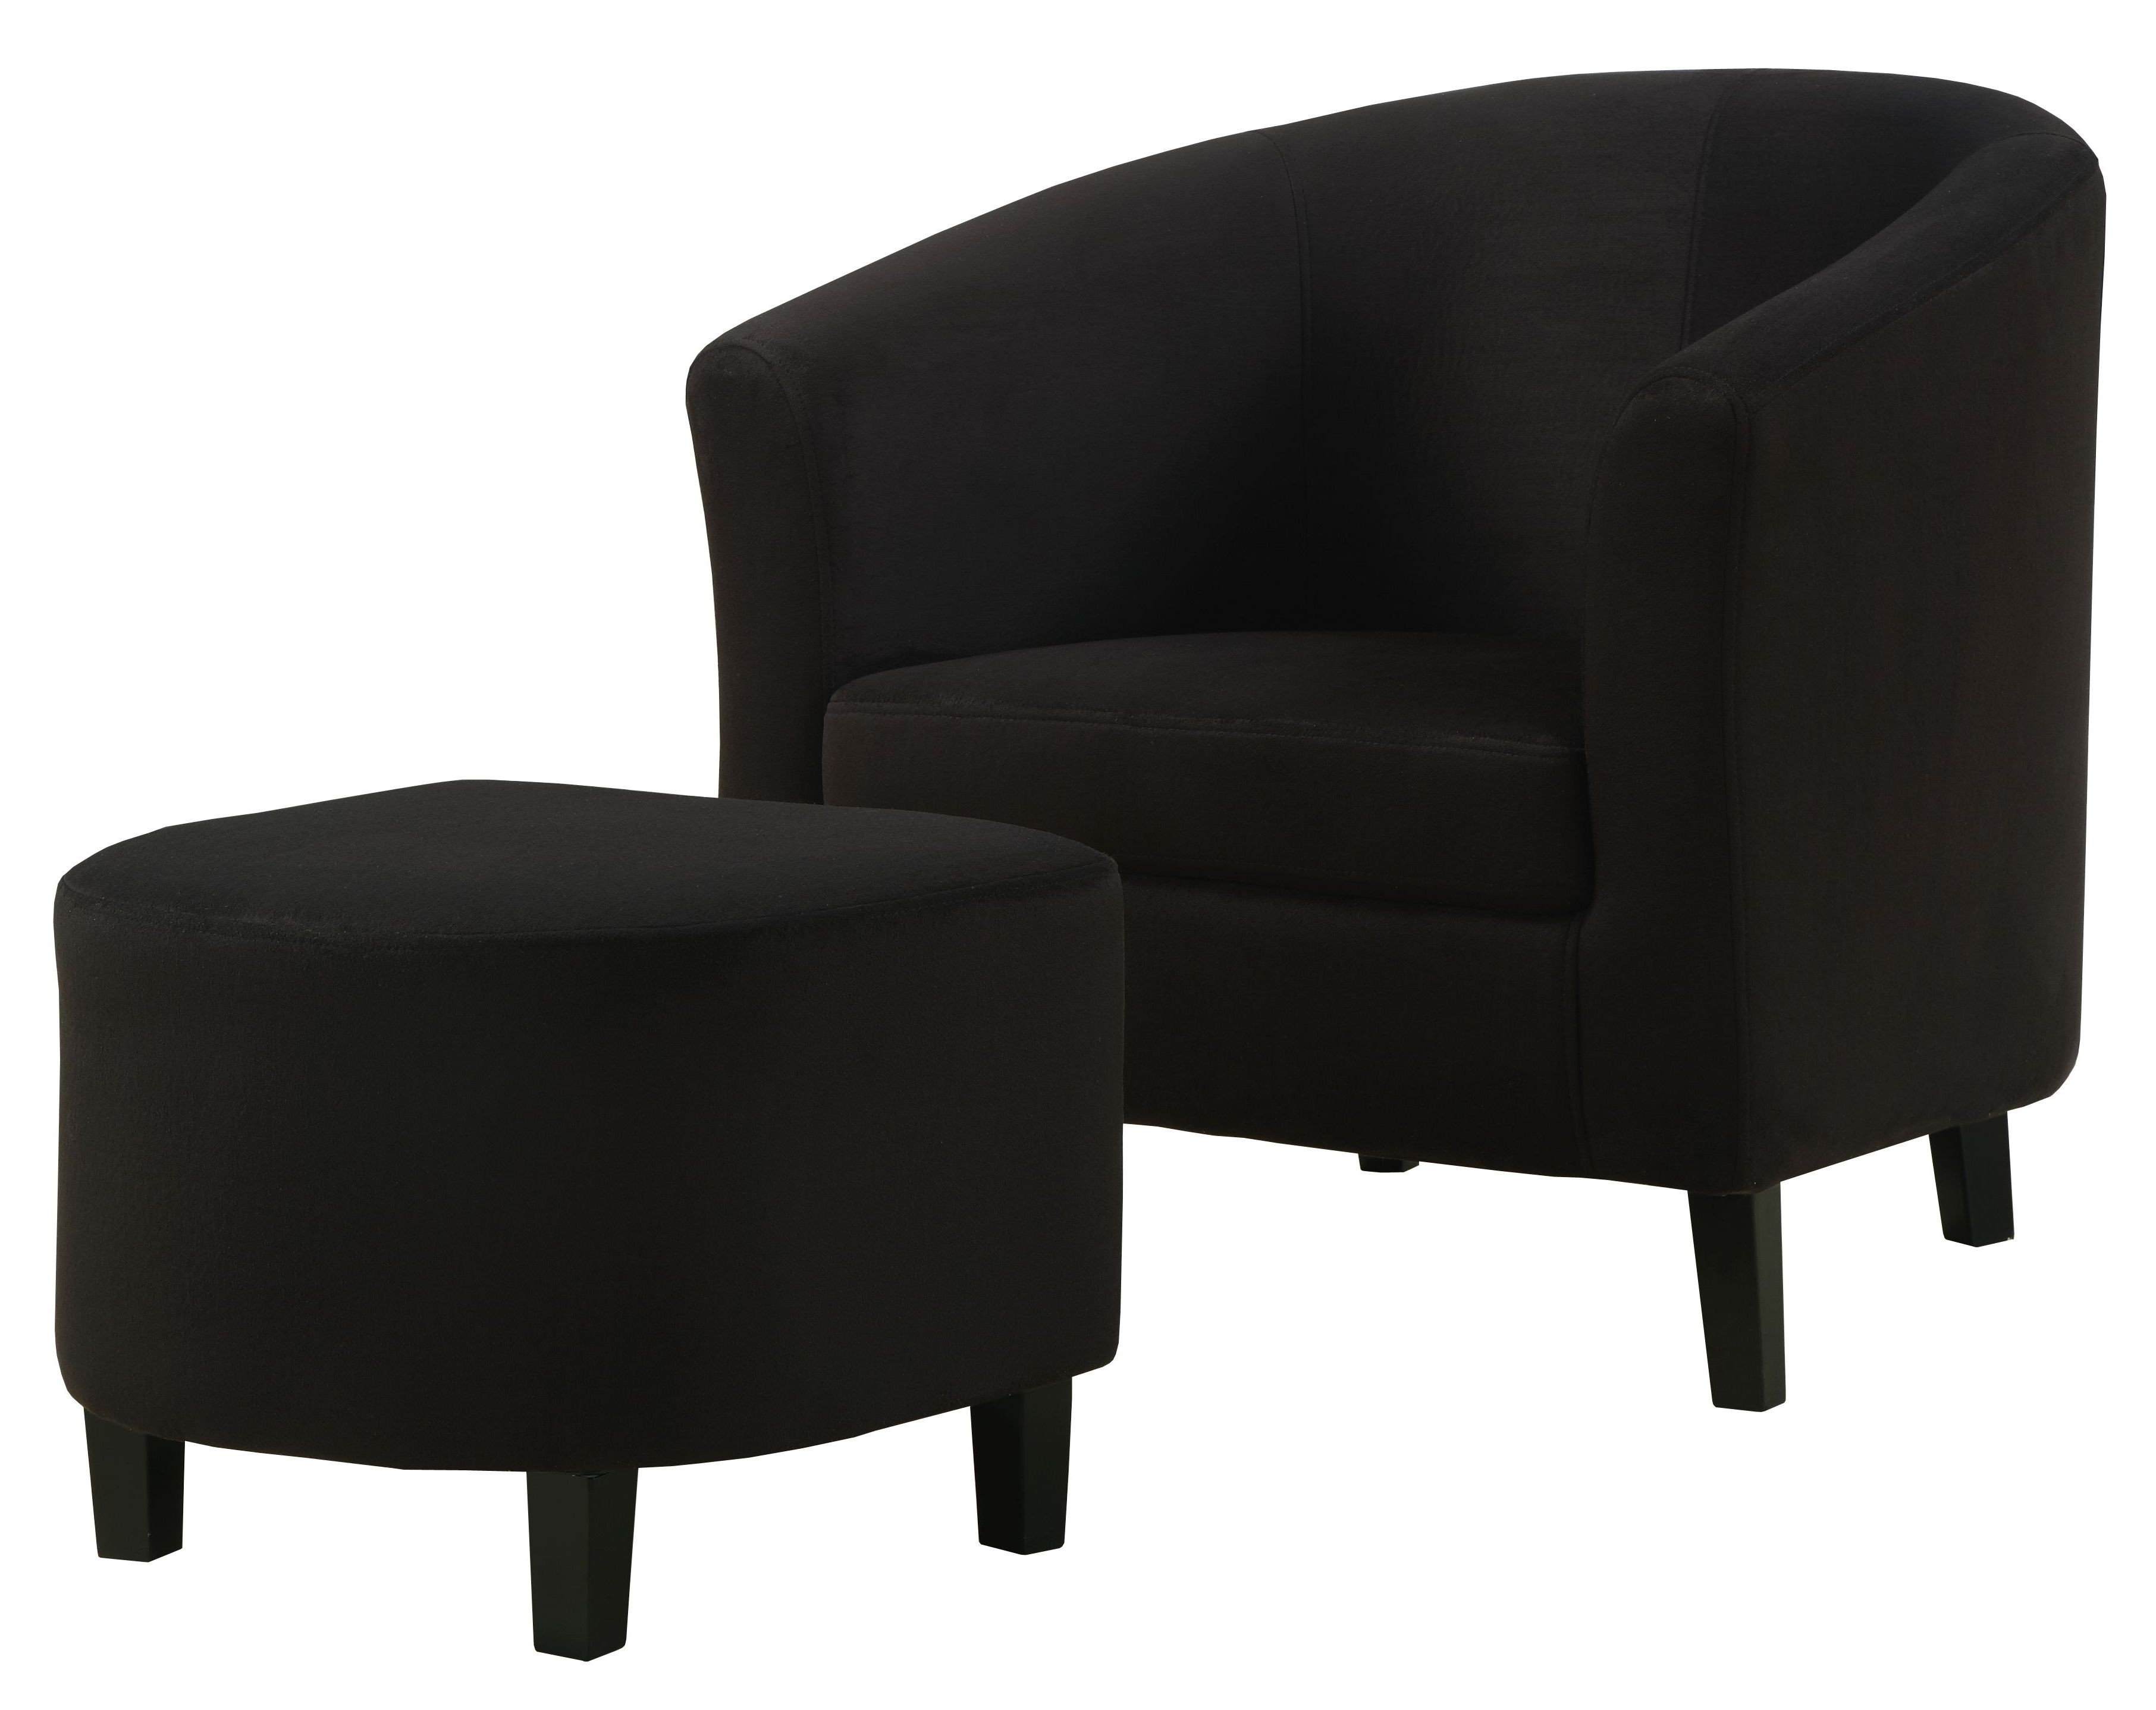 8055 Black Padded Microfiber Accent Chair and Ottoman from